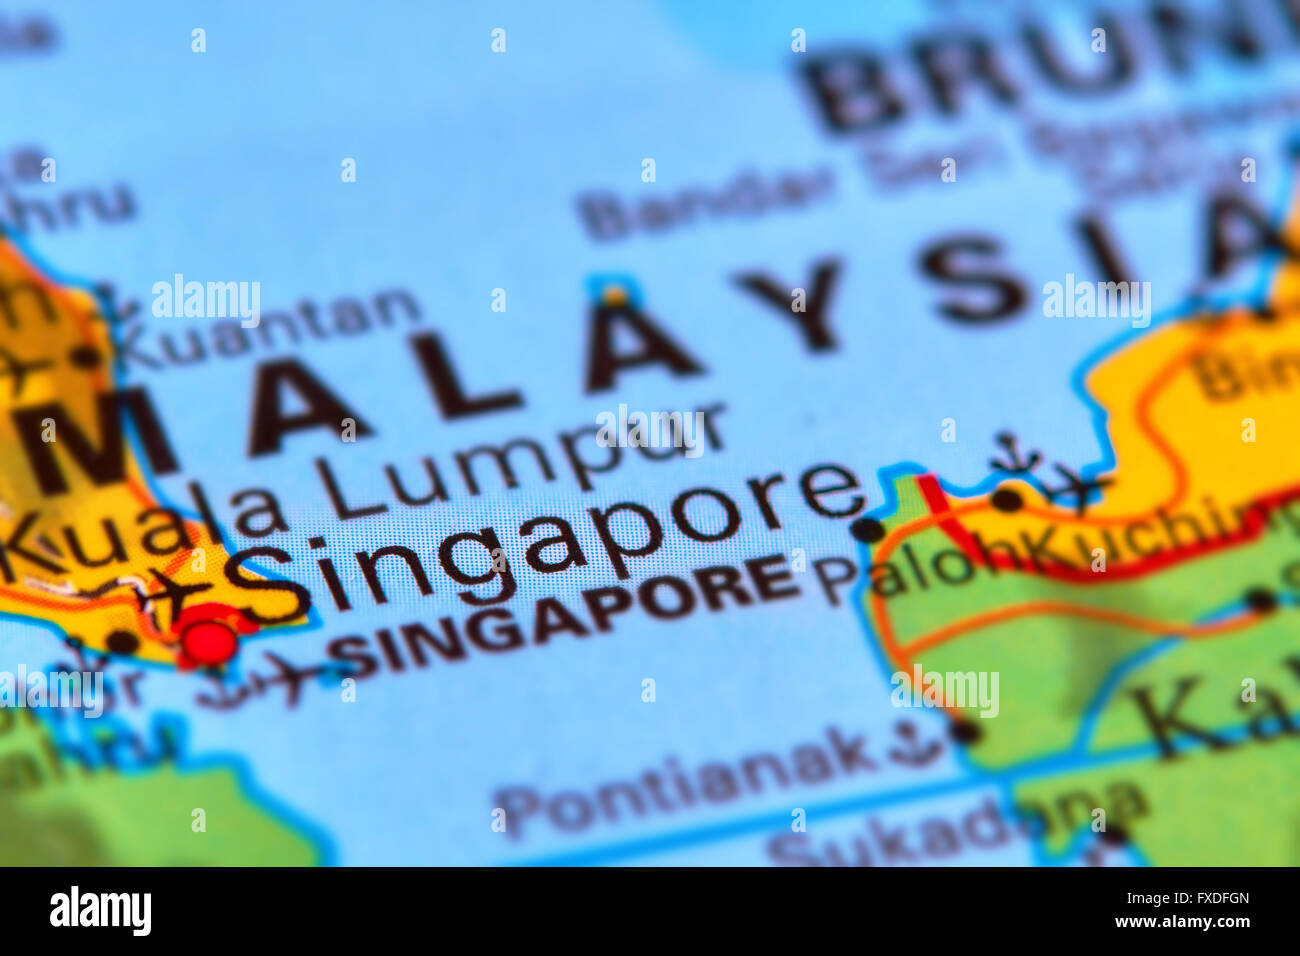 Map of singapore stock photos map of singapore stock images alamy singapore city state in asia on the world map stock image publicscrutiny Images